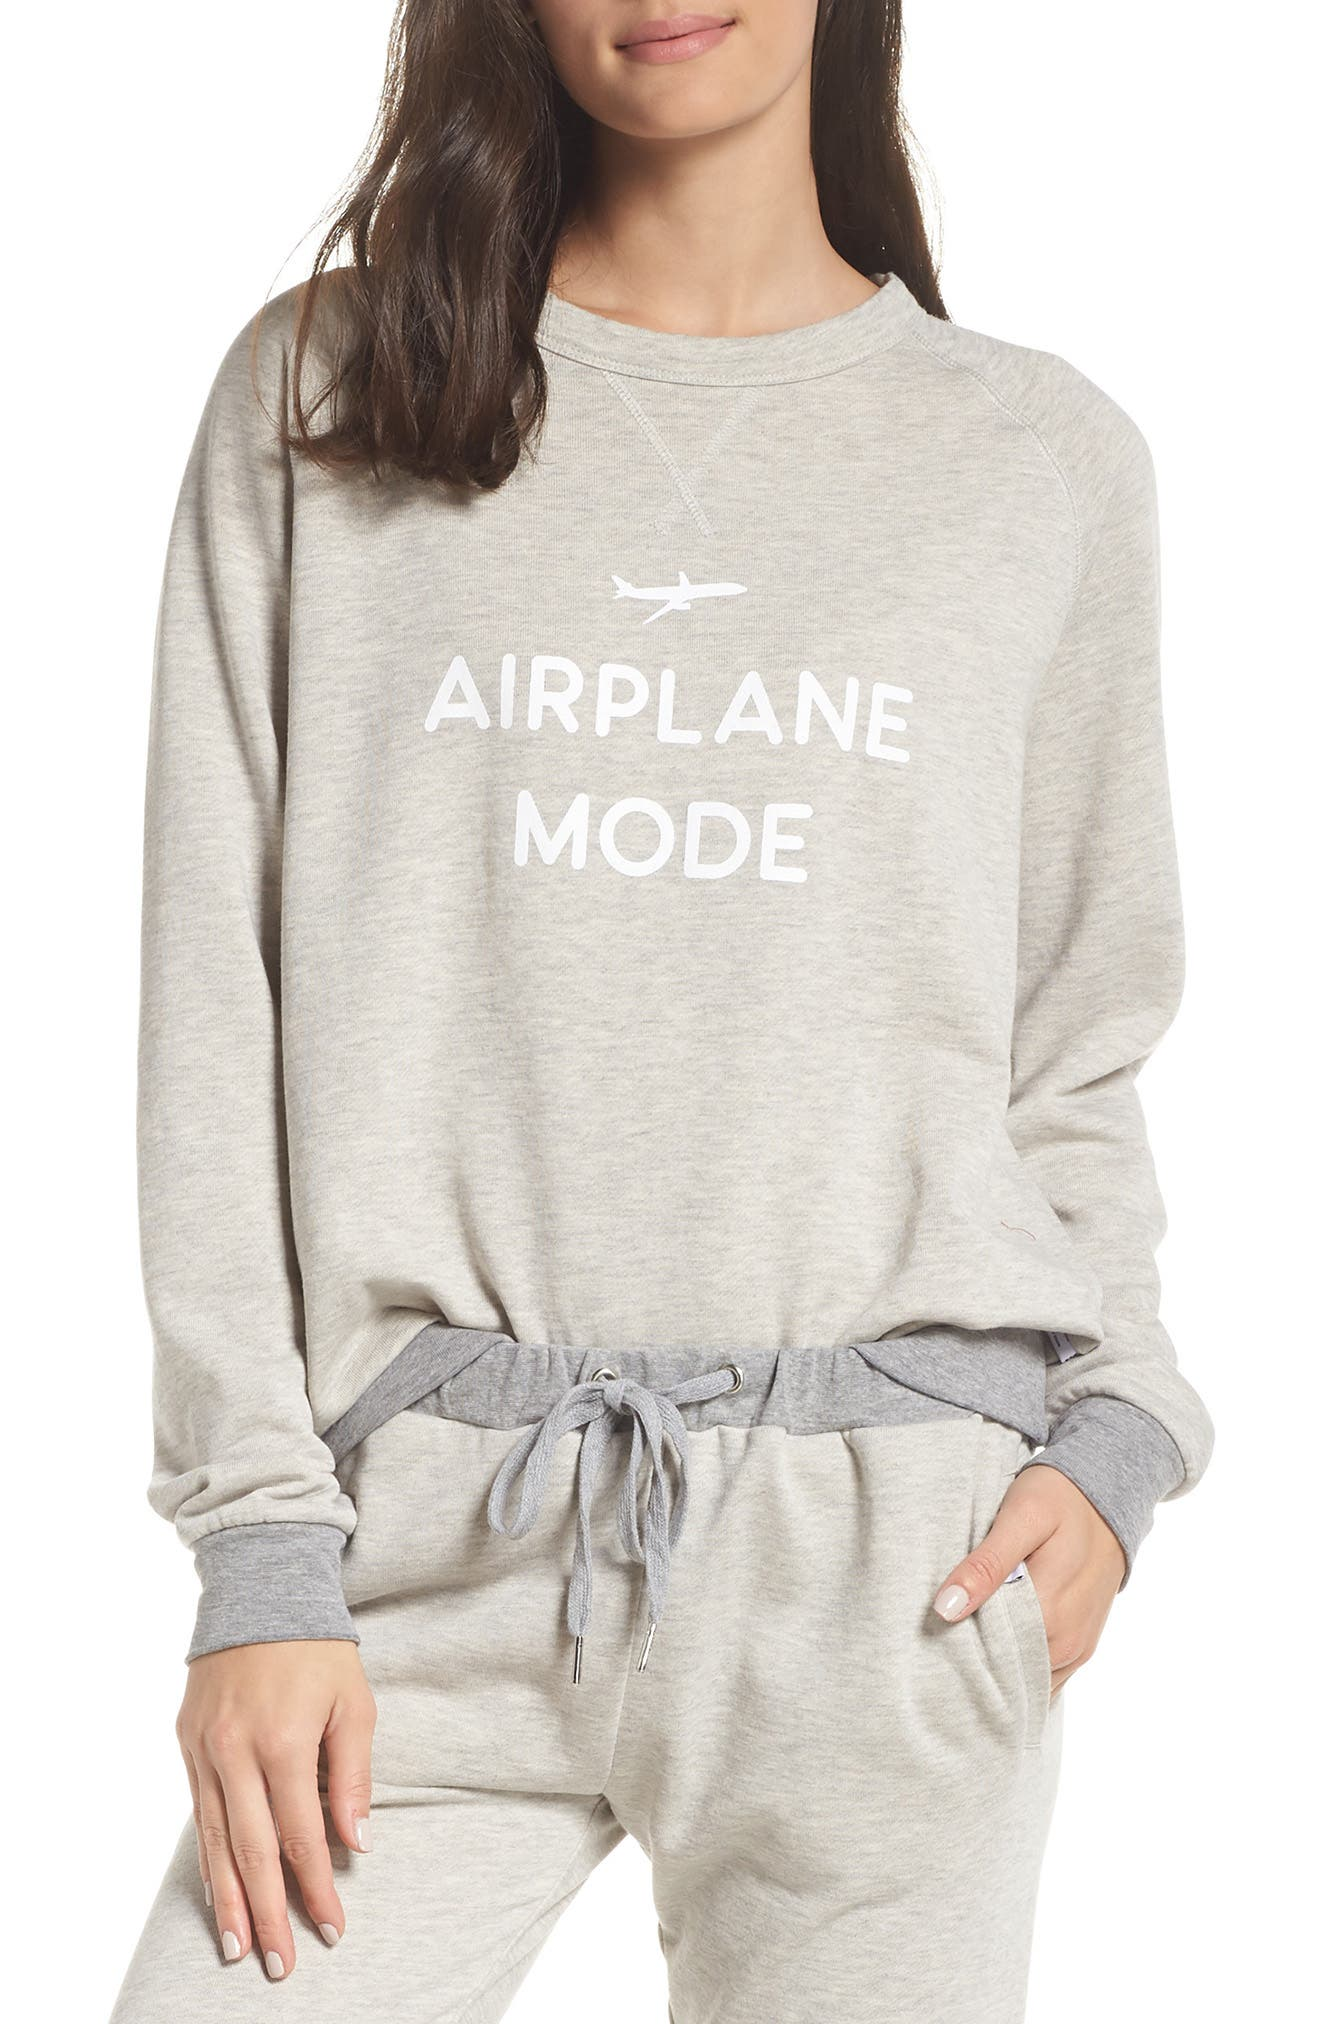 THE LAUNDRY ROOM Airplane Mode Sweatshirt in Pebble Heather